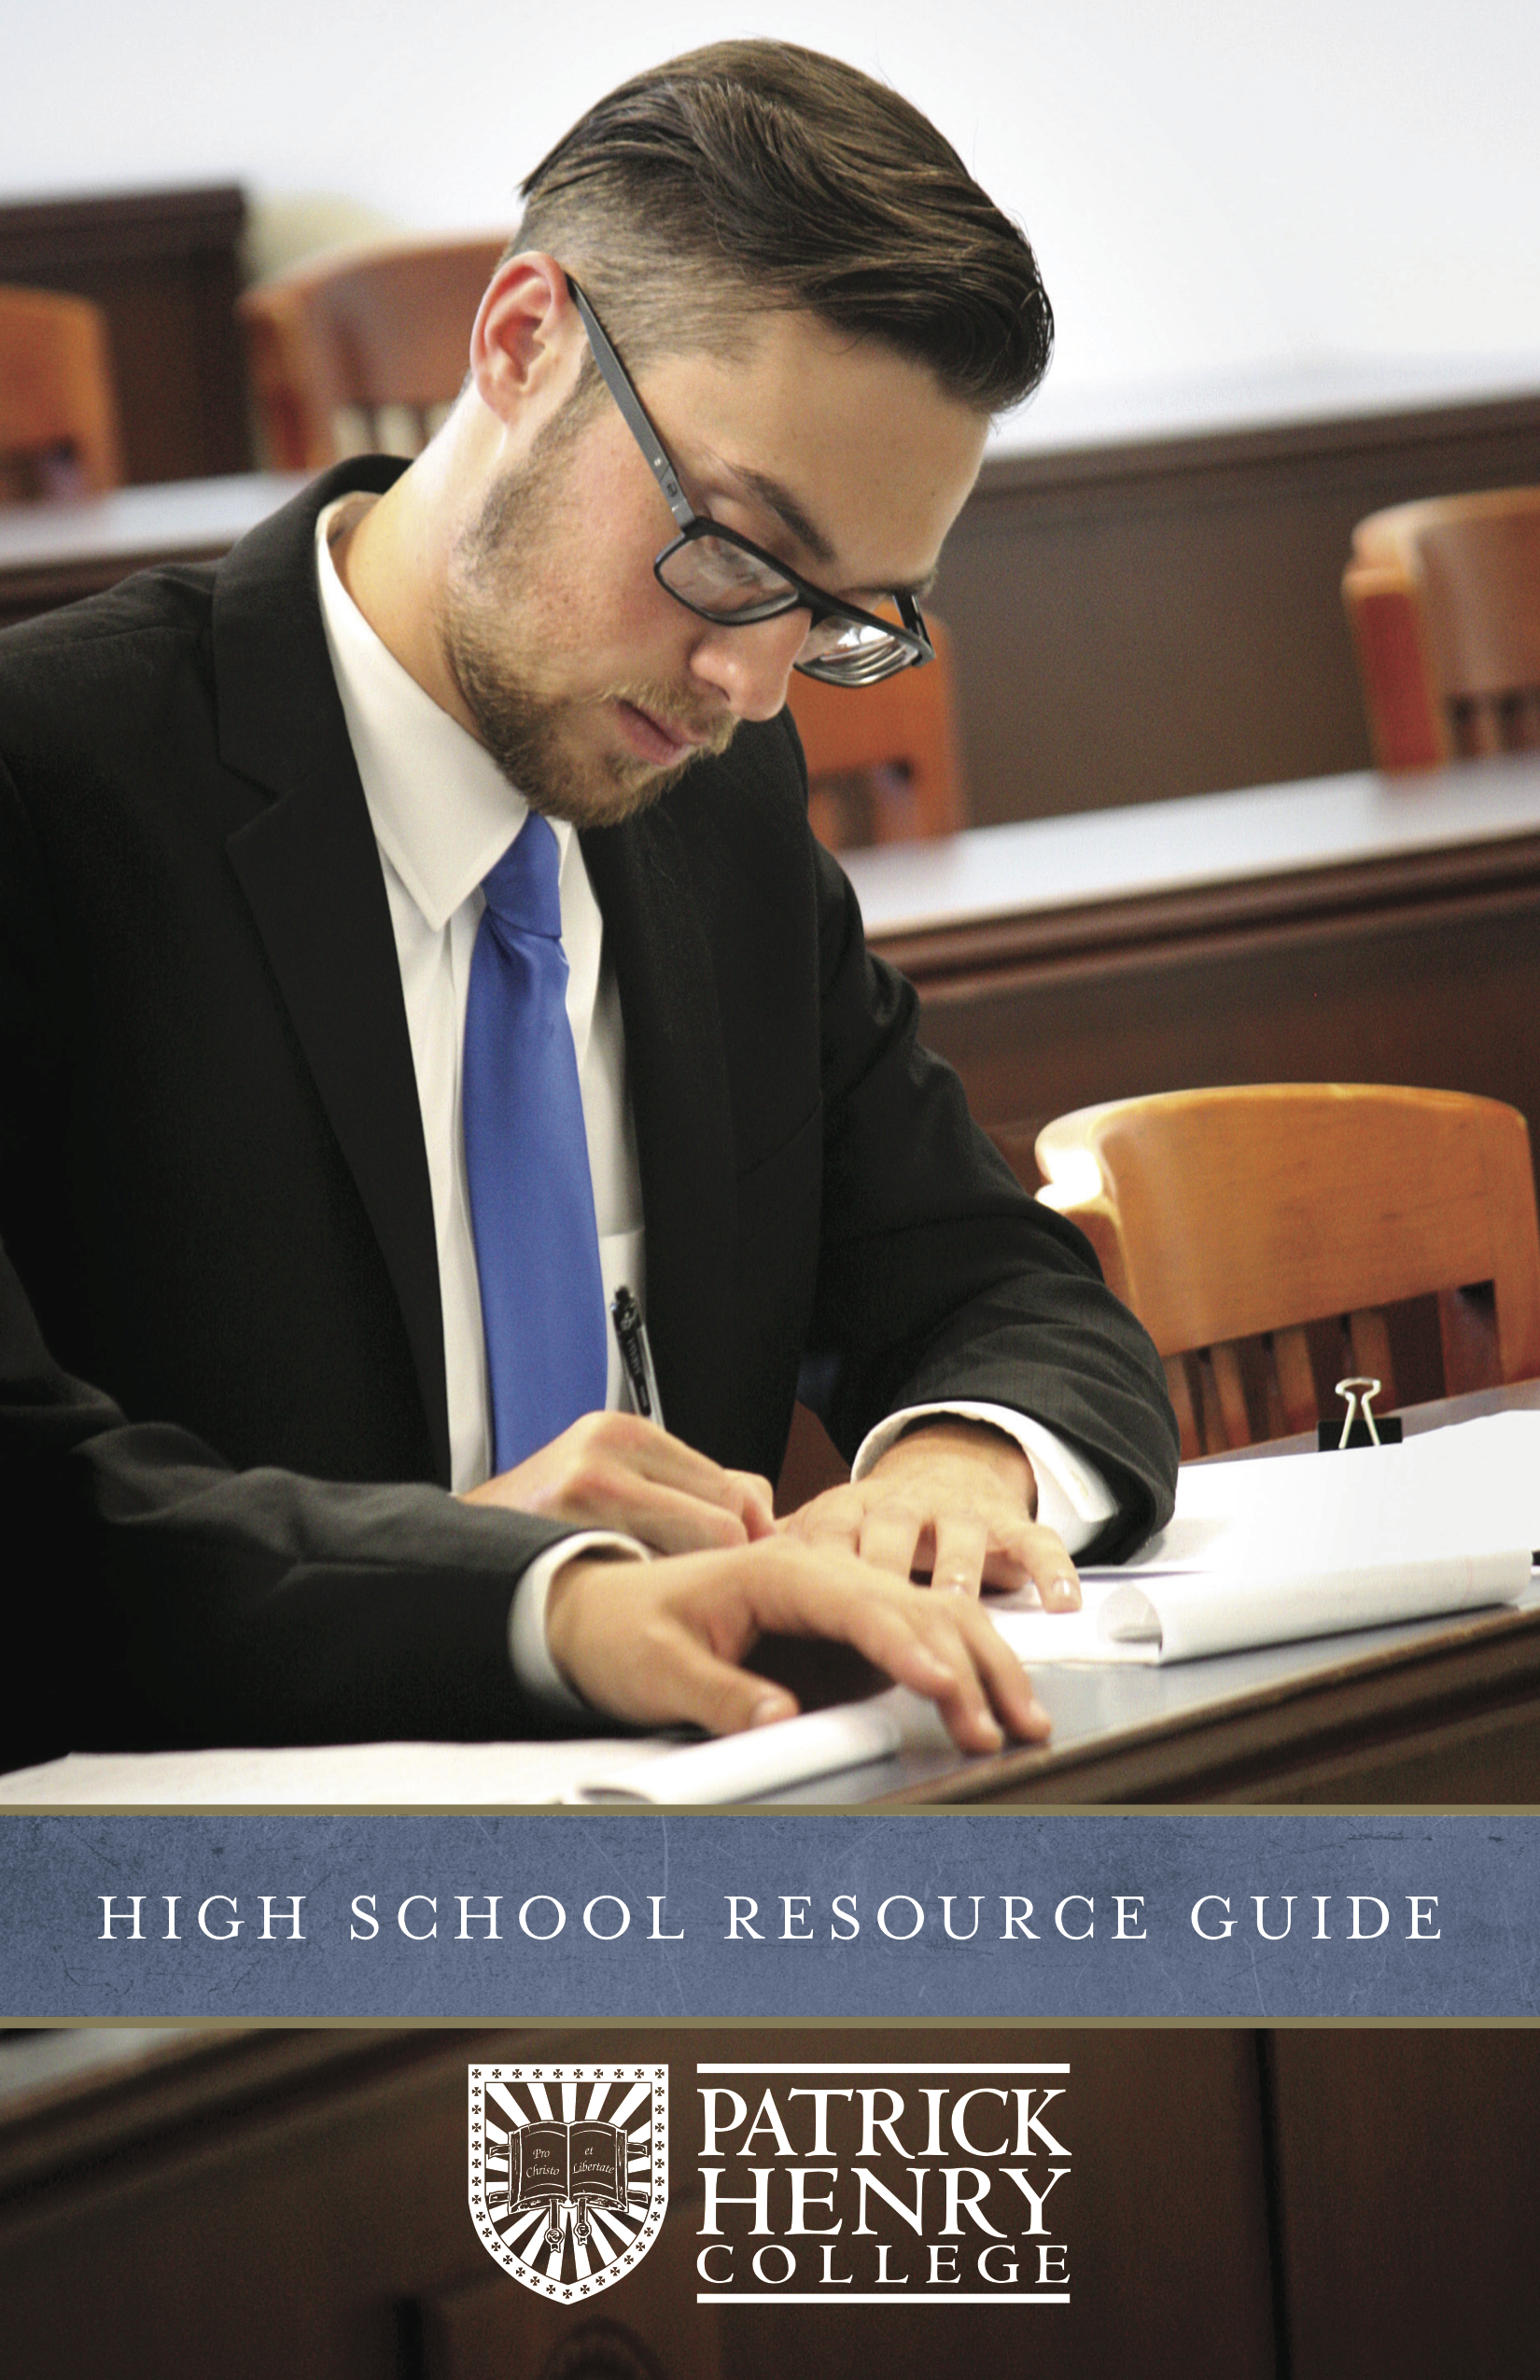 HS_Resource_Guide_2016_cover.png